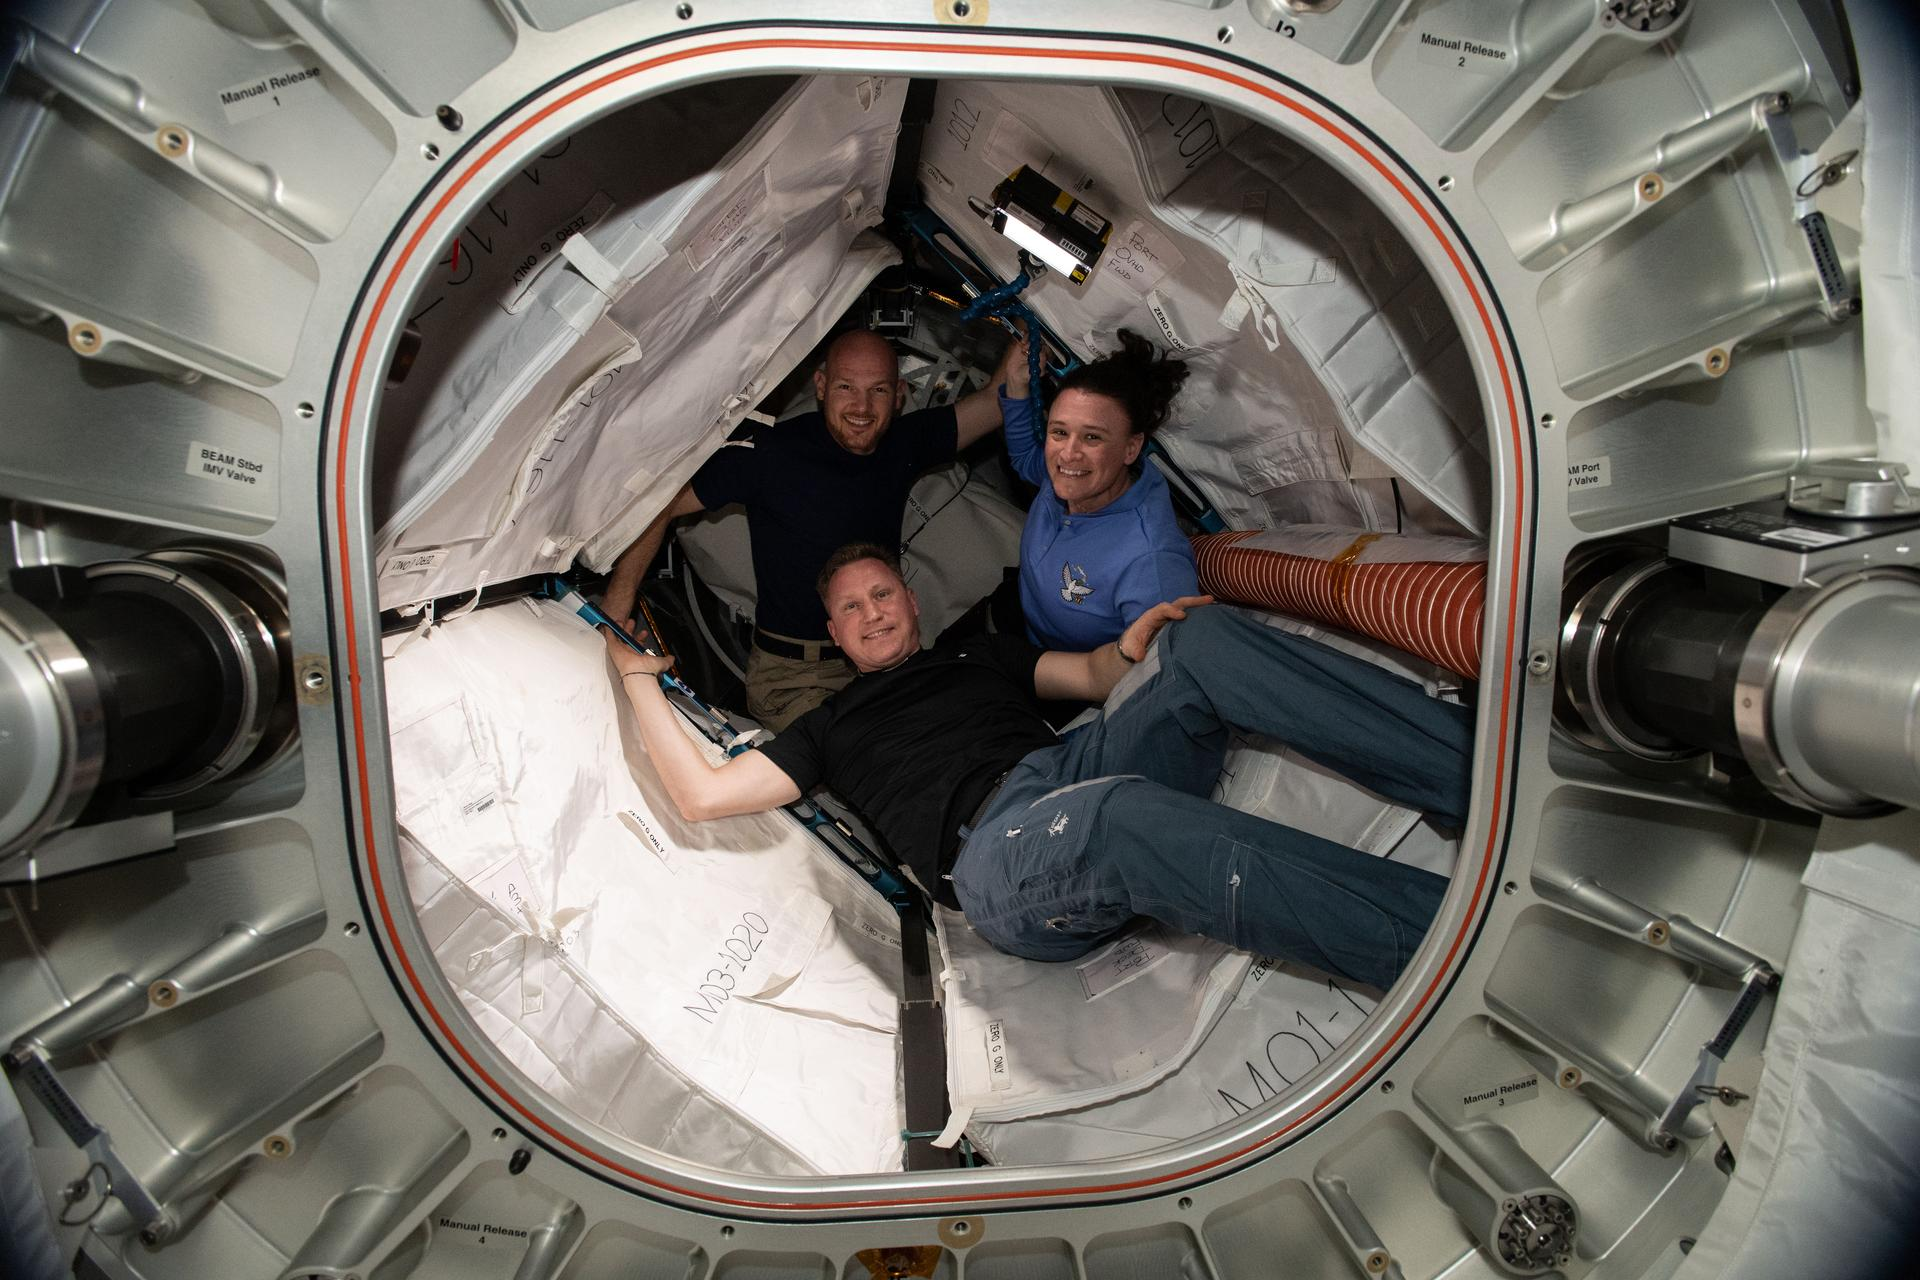 The crew of Soyuz MS-09 (Sergey Prokopyev, Alexander Gerst, and Serena Auñón-Chancellor) is seen aboard the International Space Station in 2018.